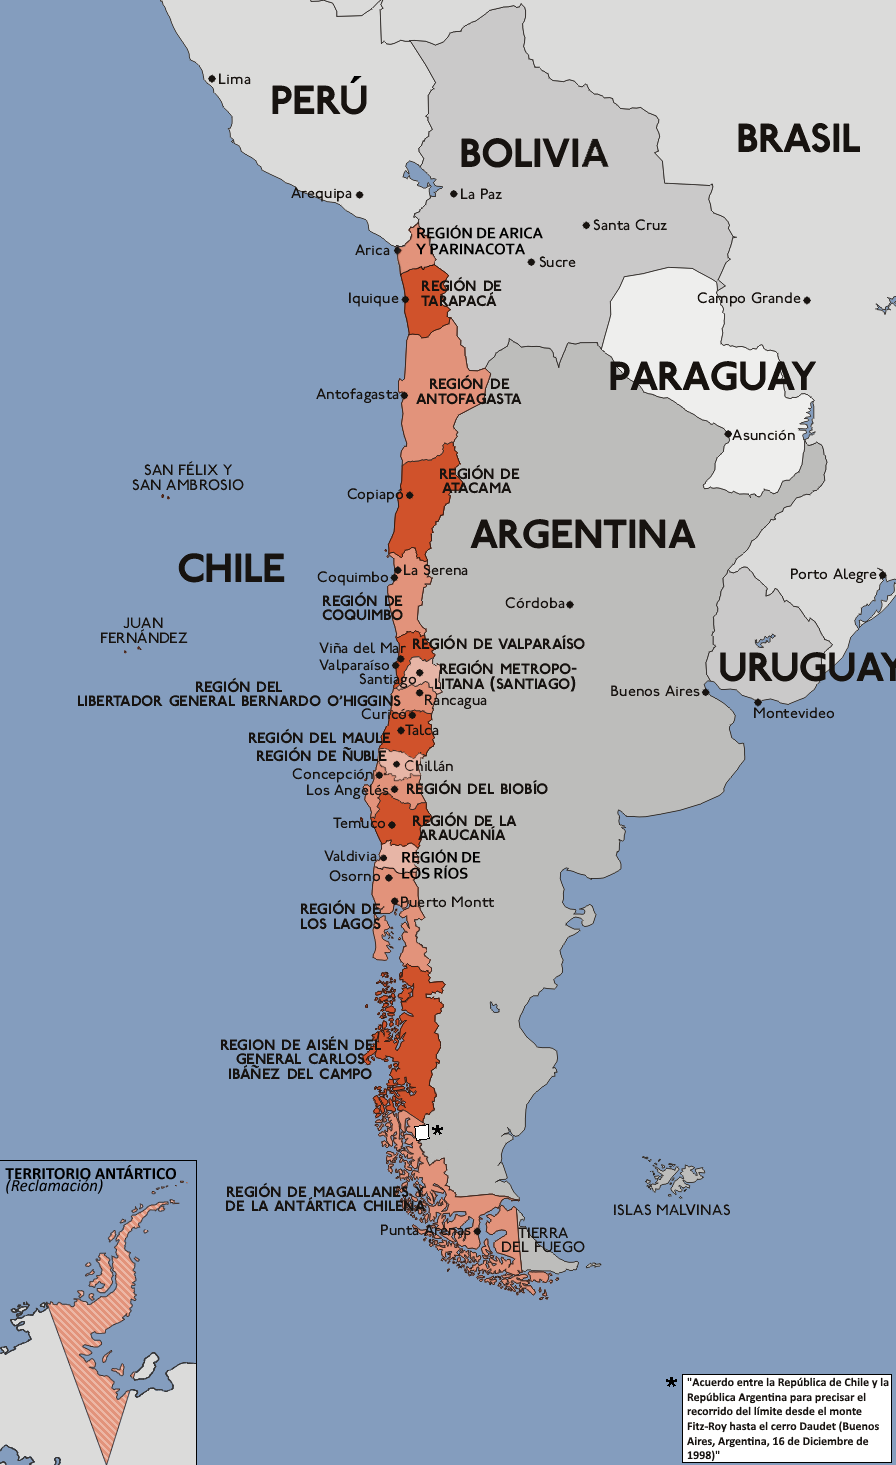 http://upload.wikimedia.org/wikipedia/commons/0/06/Mapa_administrativo_de_Chile.png